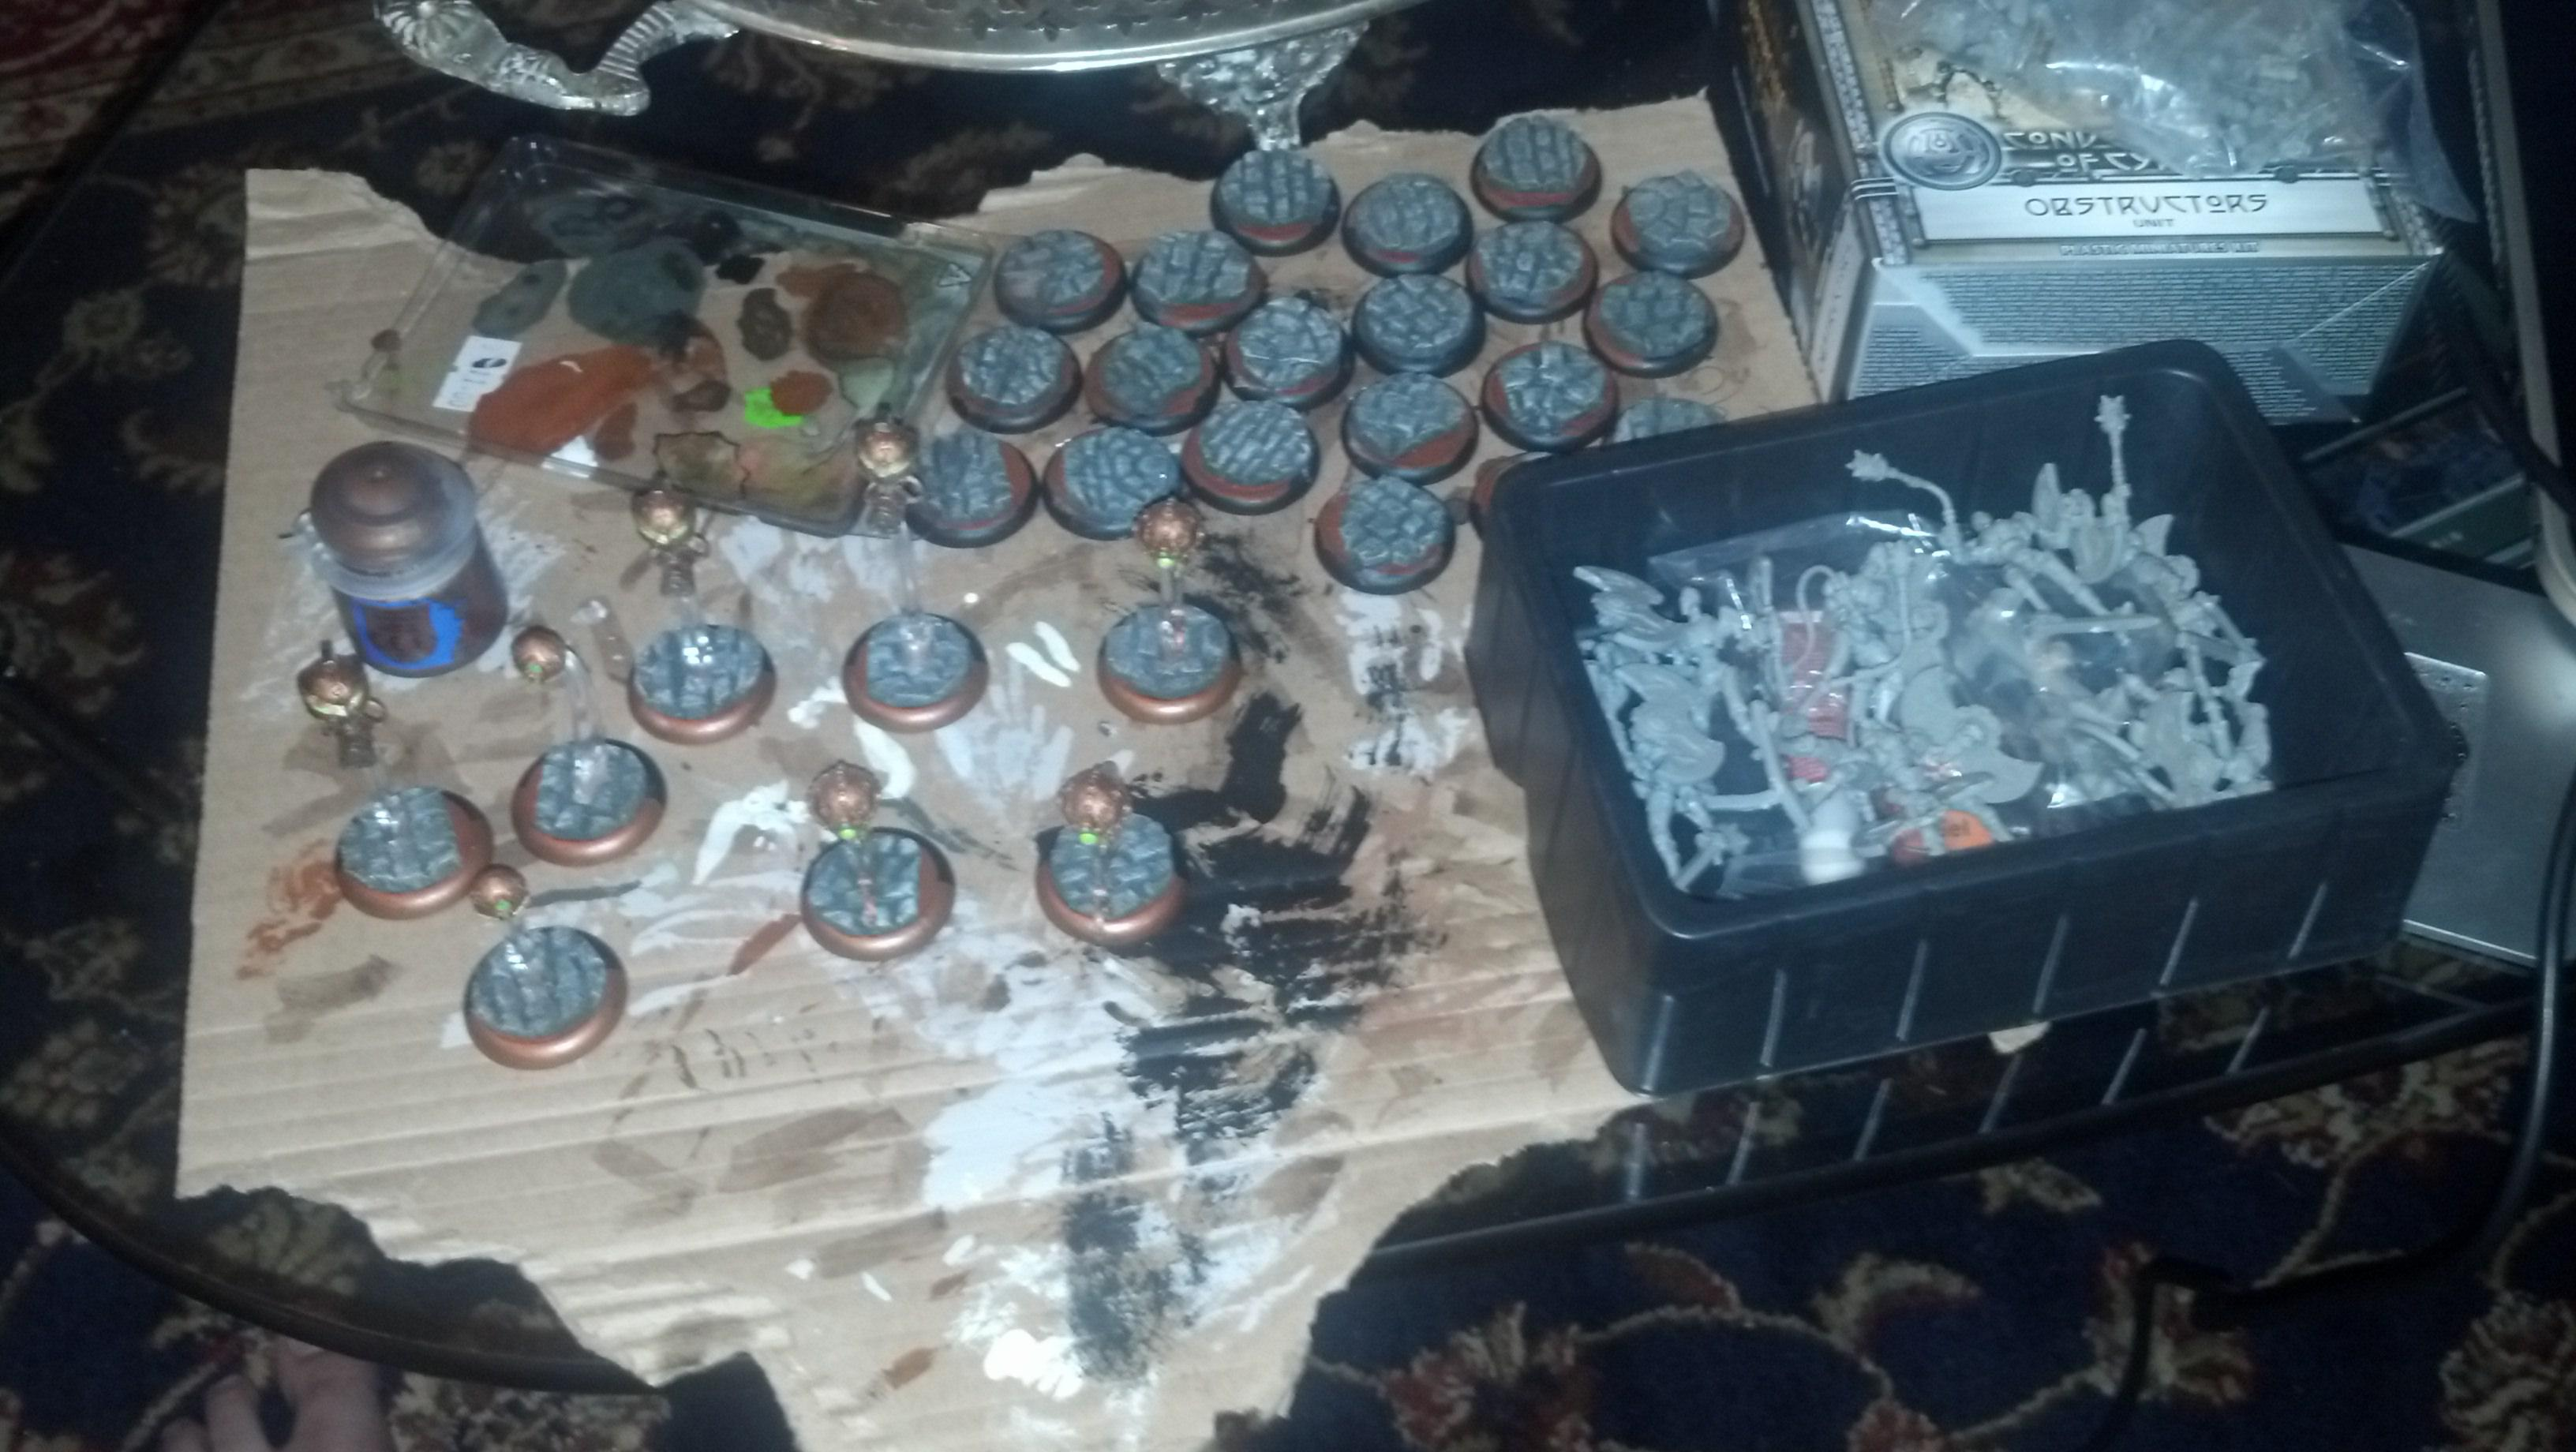 Coc, Convergence, Copper, Cyriss, Hordes, Machines, Privateer Press, Warmachine